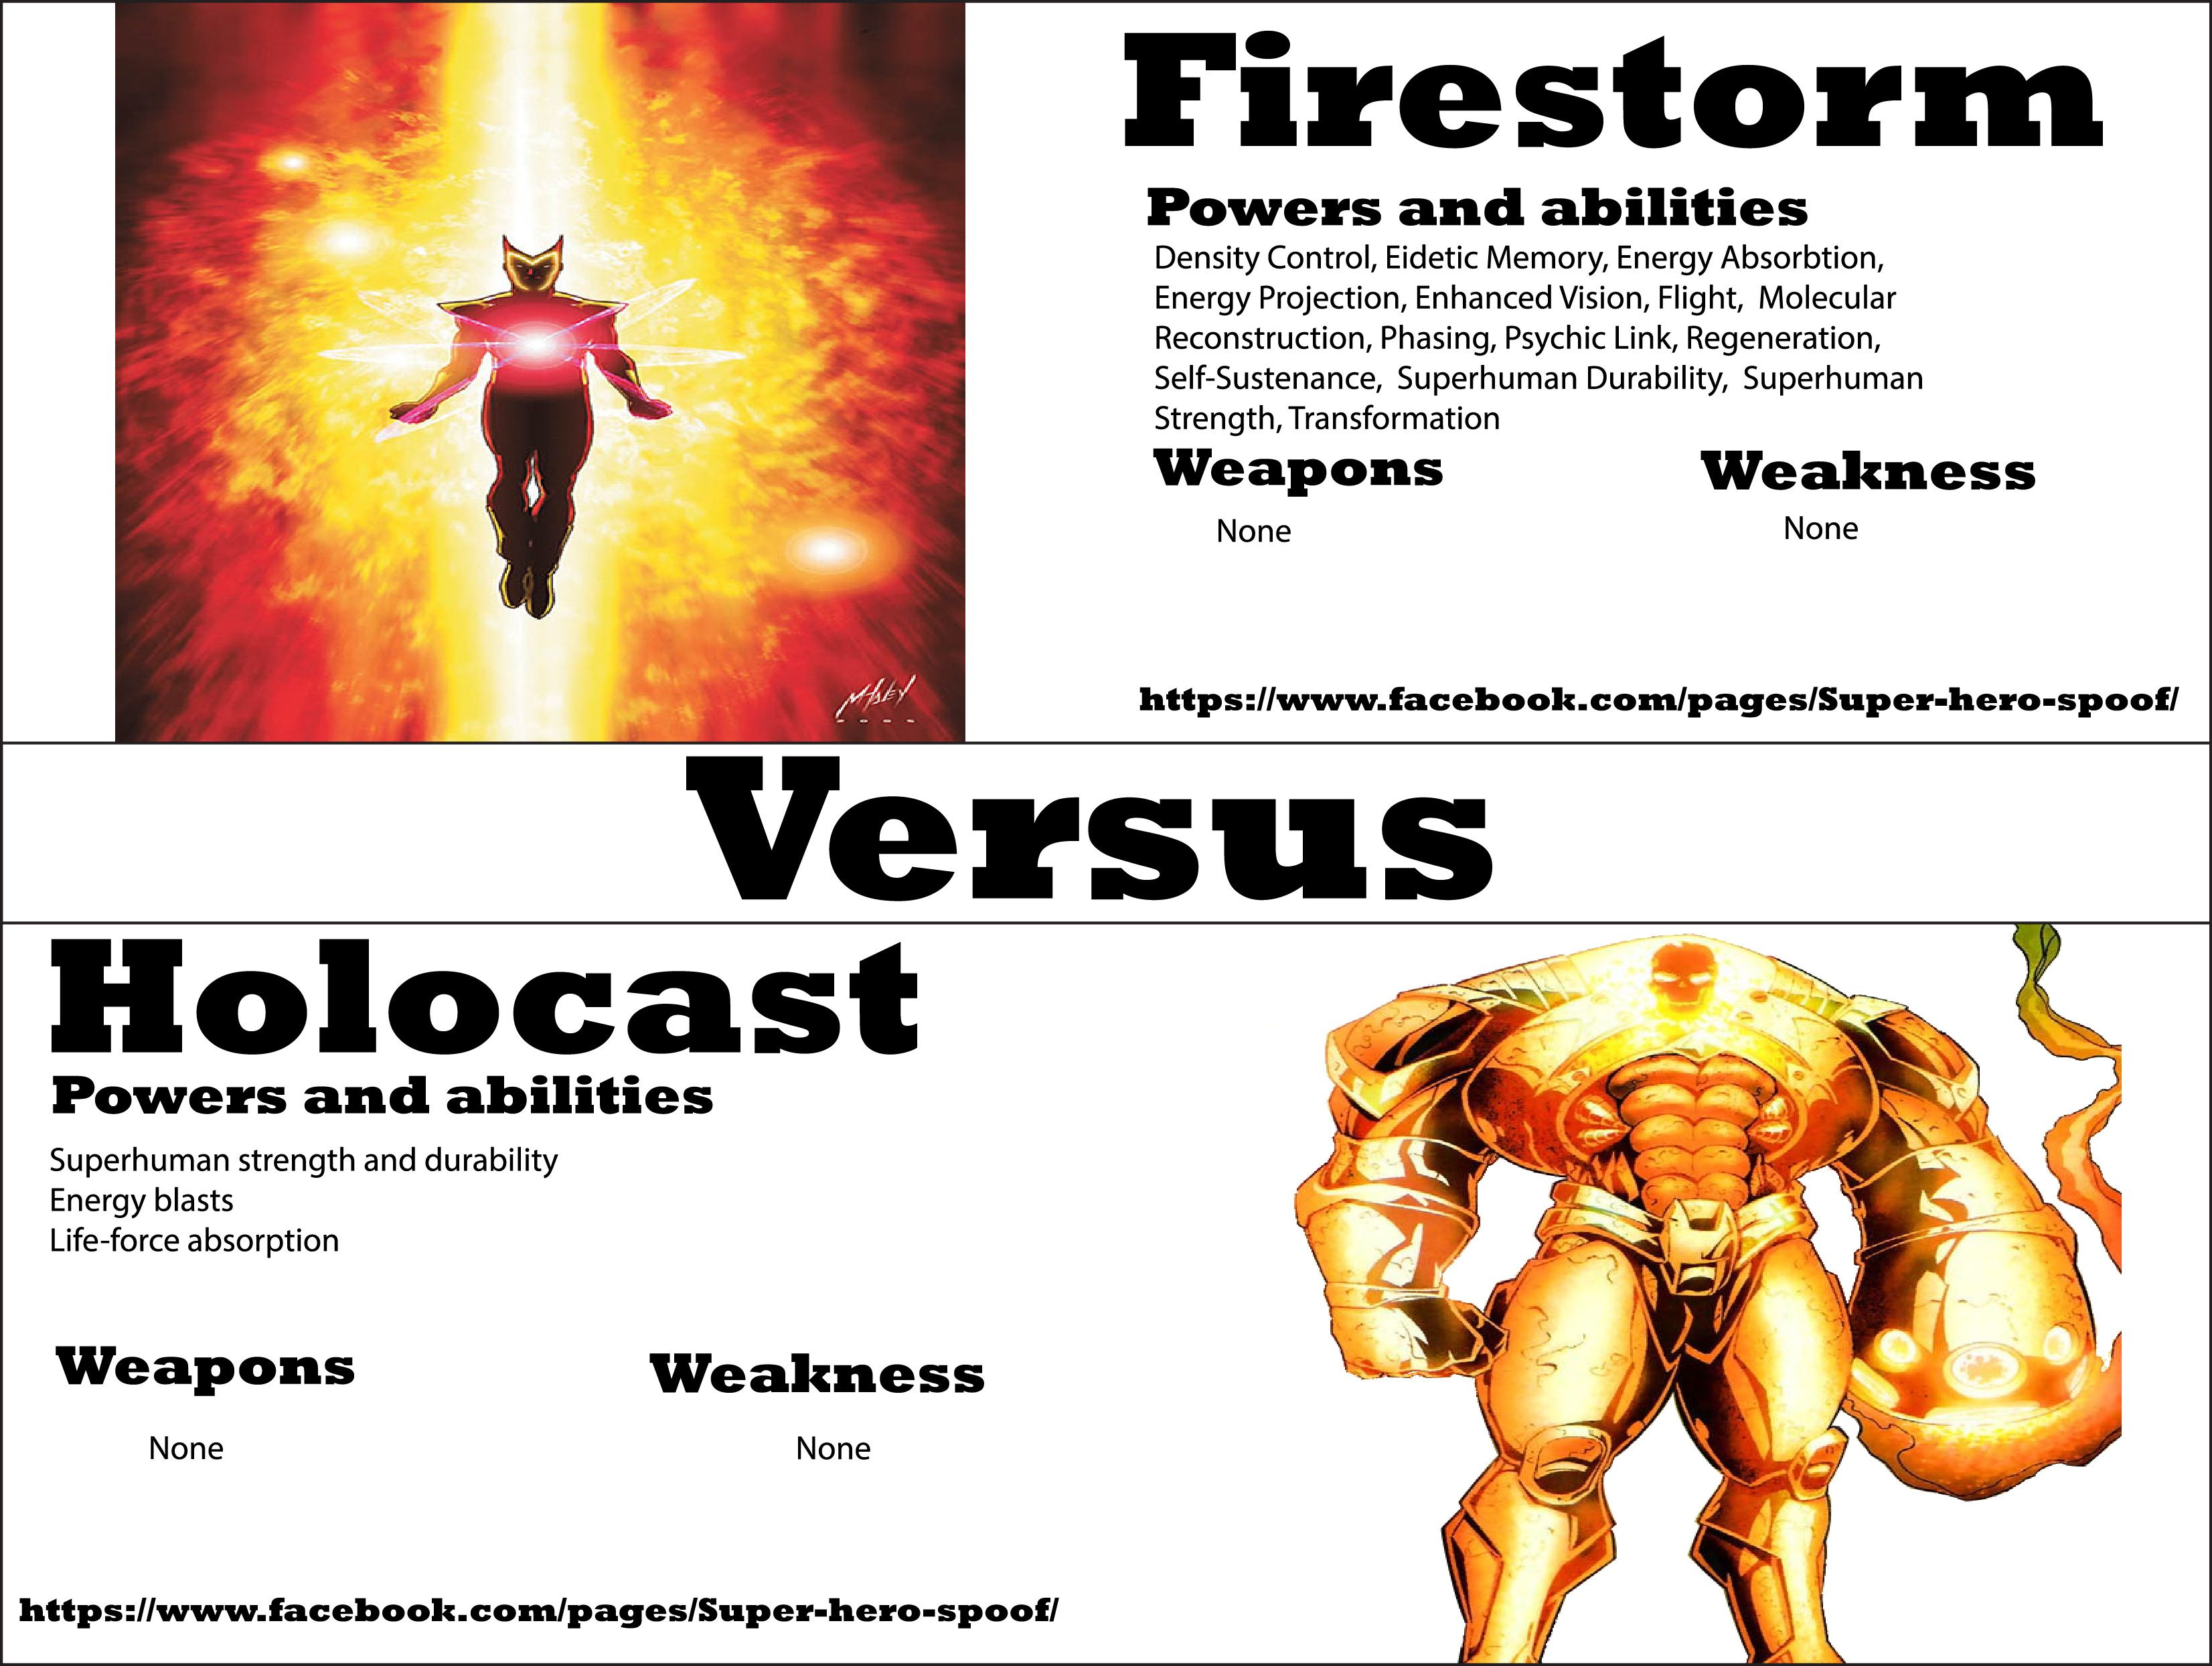 he man vs hercules who will win and why powers abilities firestorm vs holocast who will win and why powers abilities weaknesses